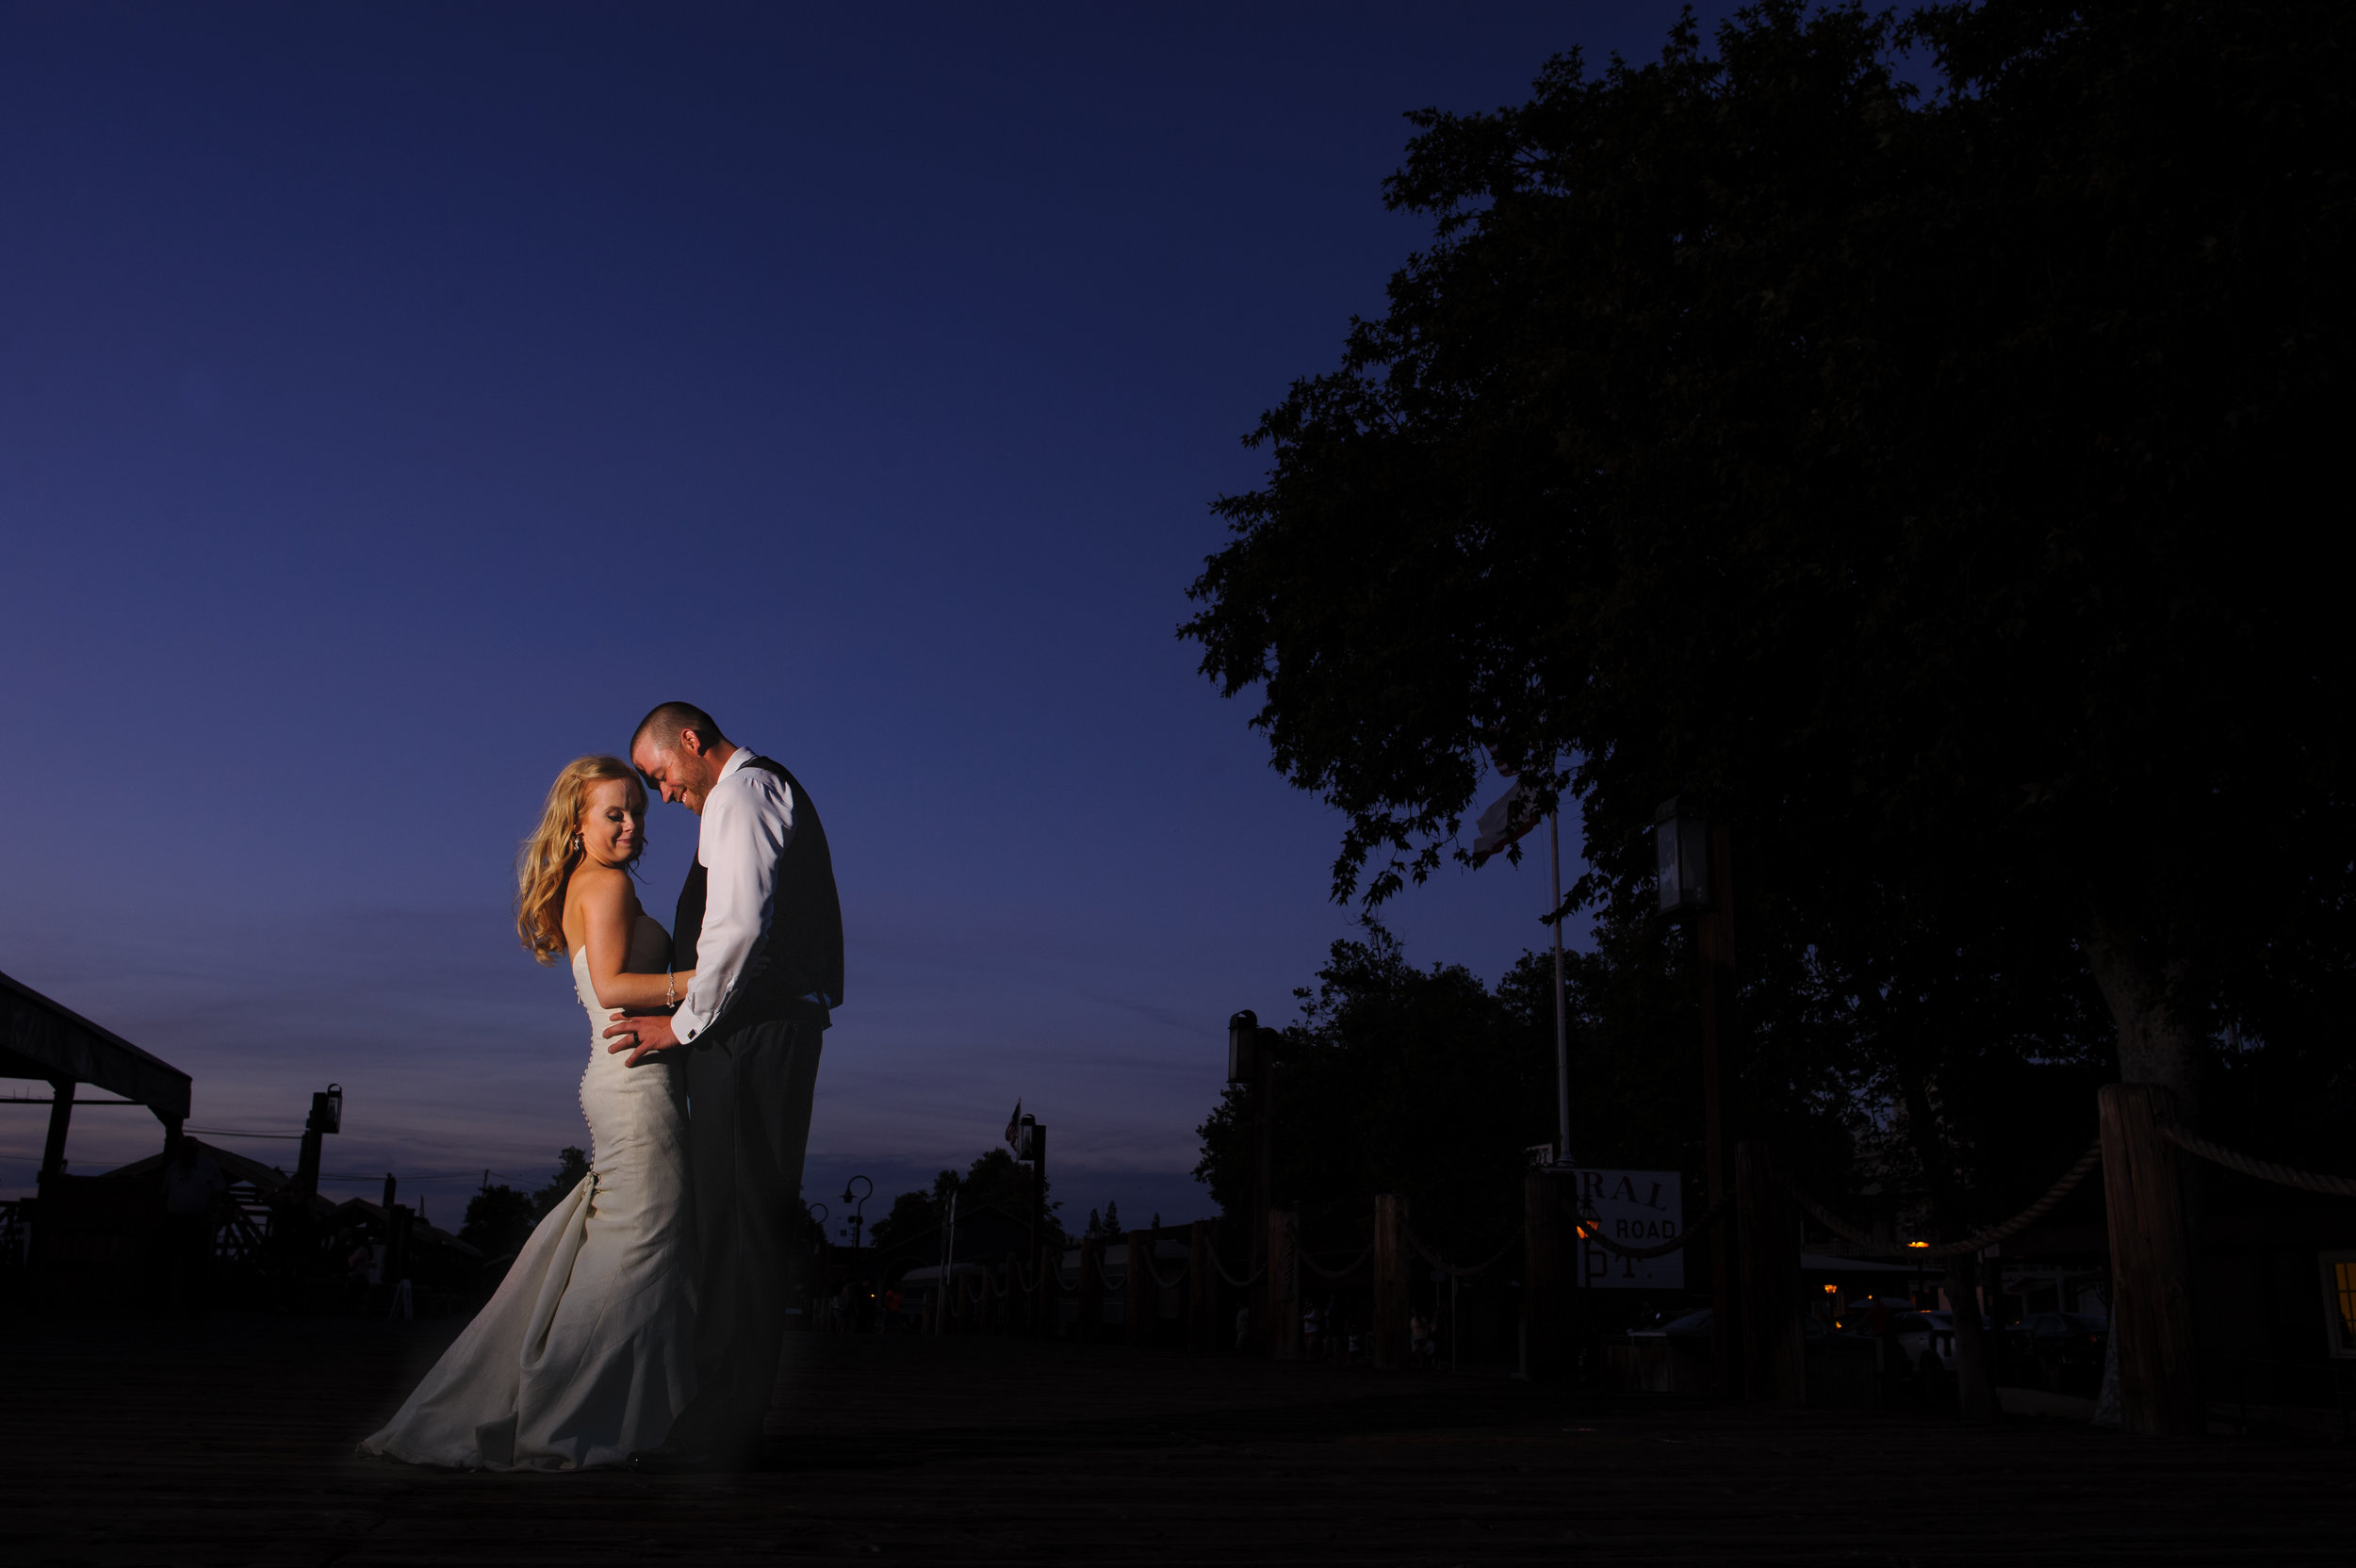 jenelle-brian-001-courtyard-d'oro-old-sacramento-wedding-photographer-katherine-nicole-photography001.JPG